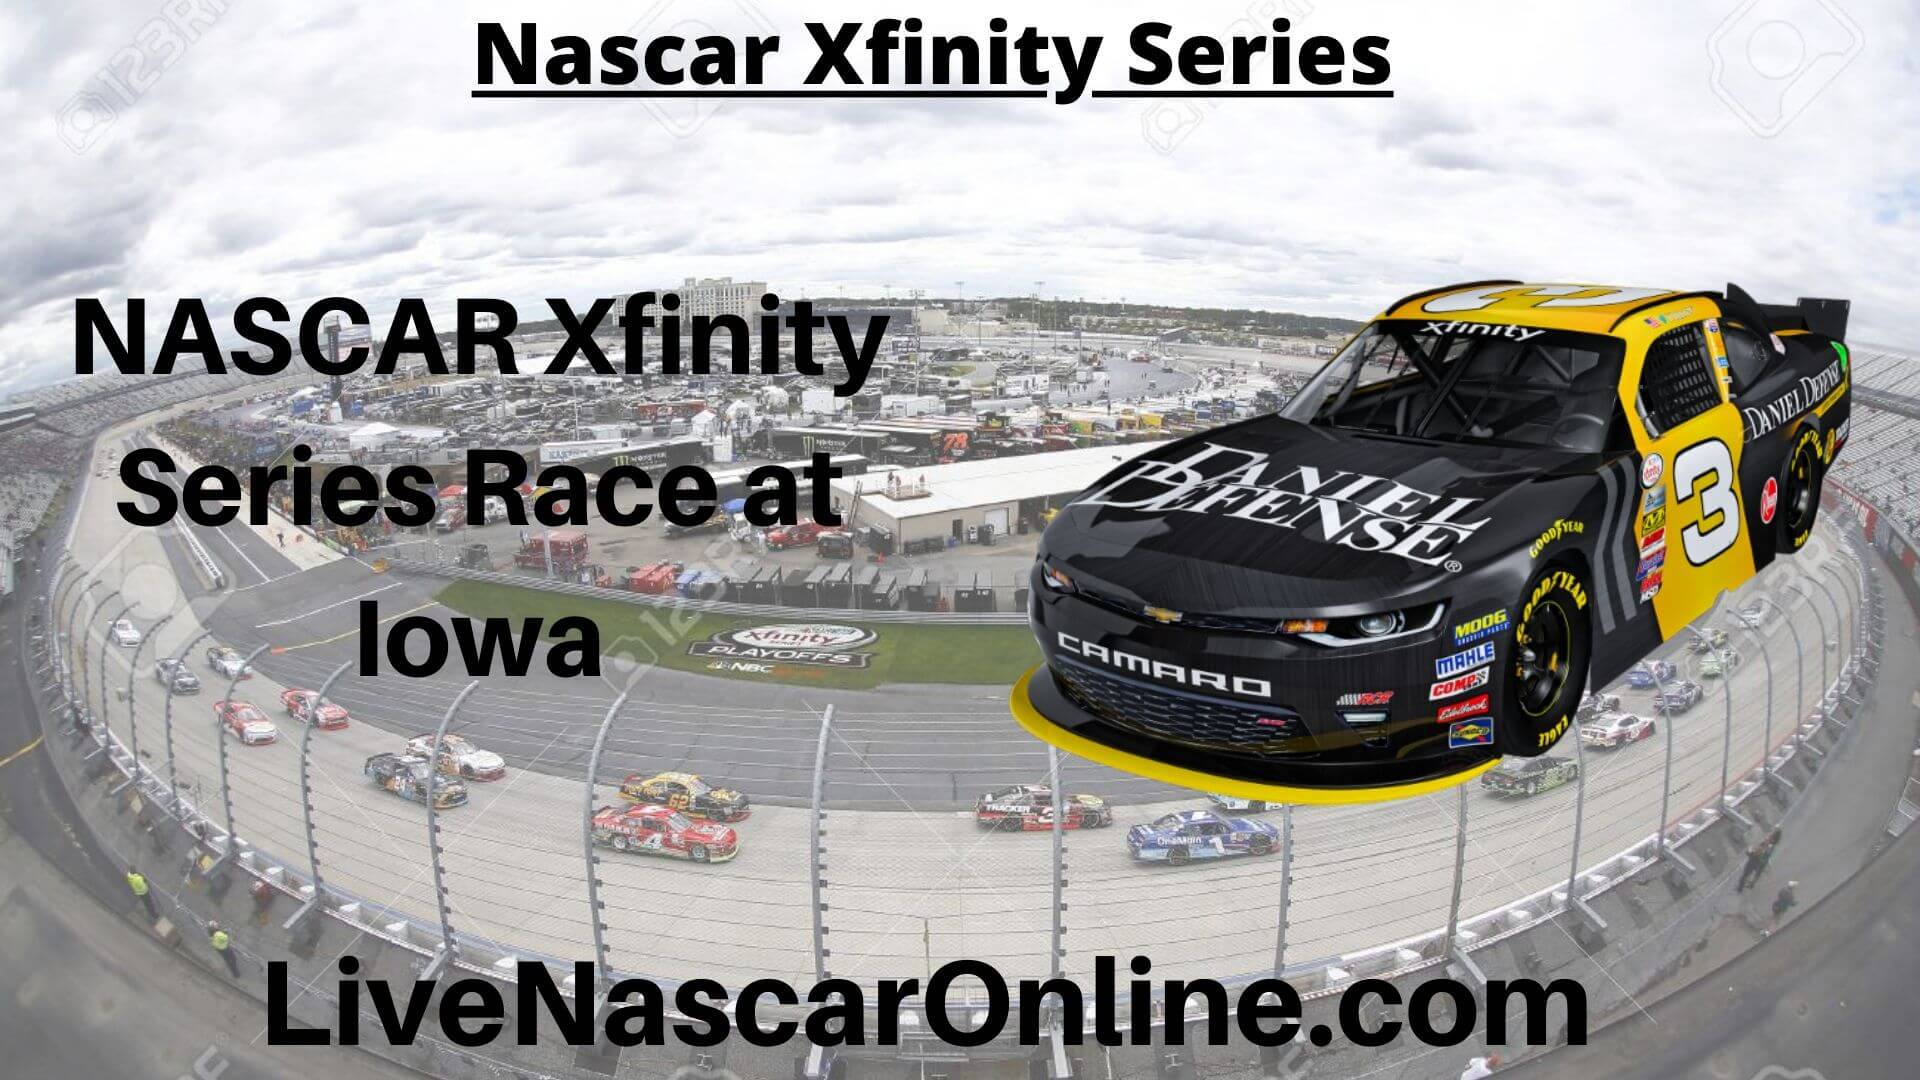 NASCAR Xfinity Series Race at Iowa Online Stream | NASCAR Iowa 2020